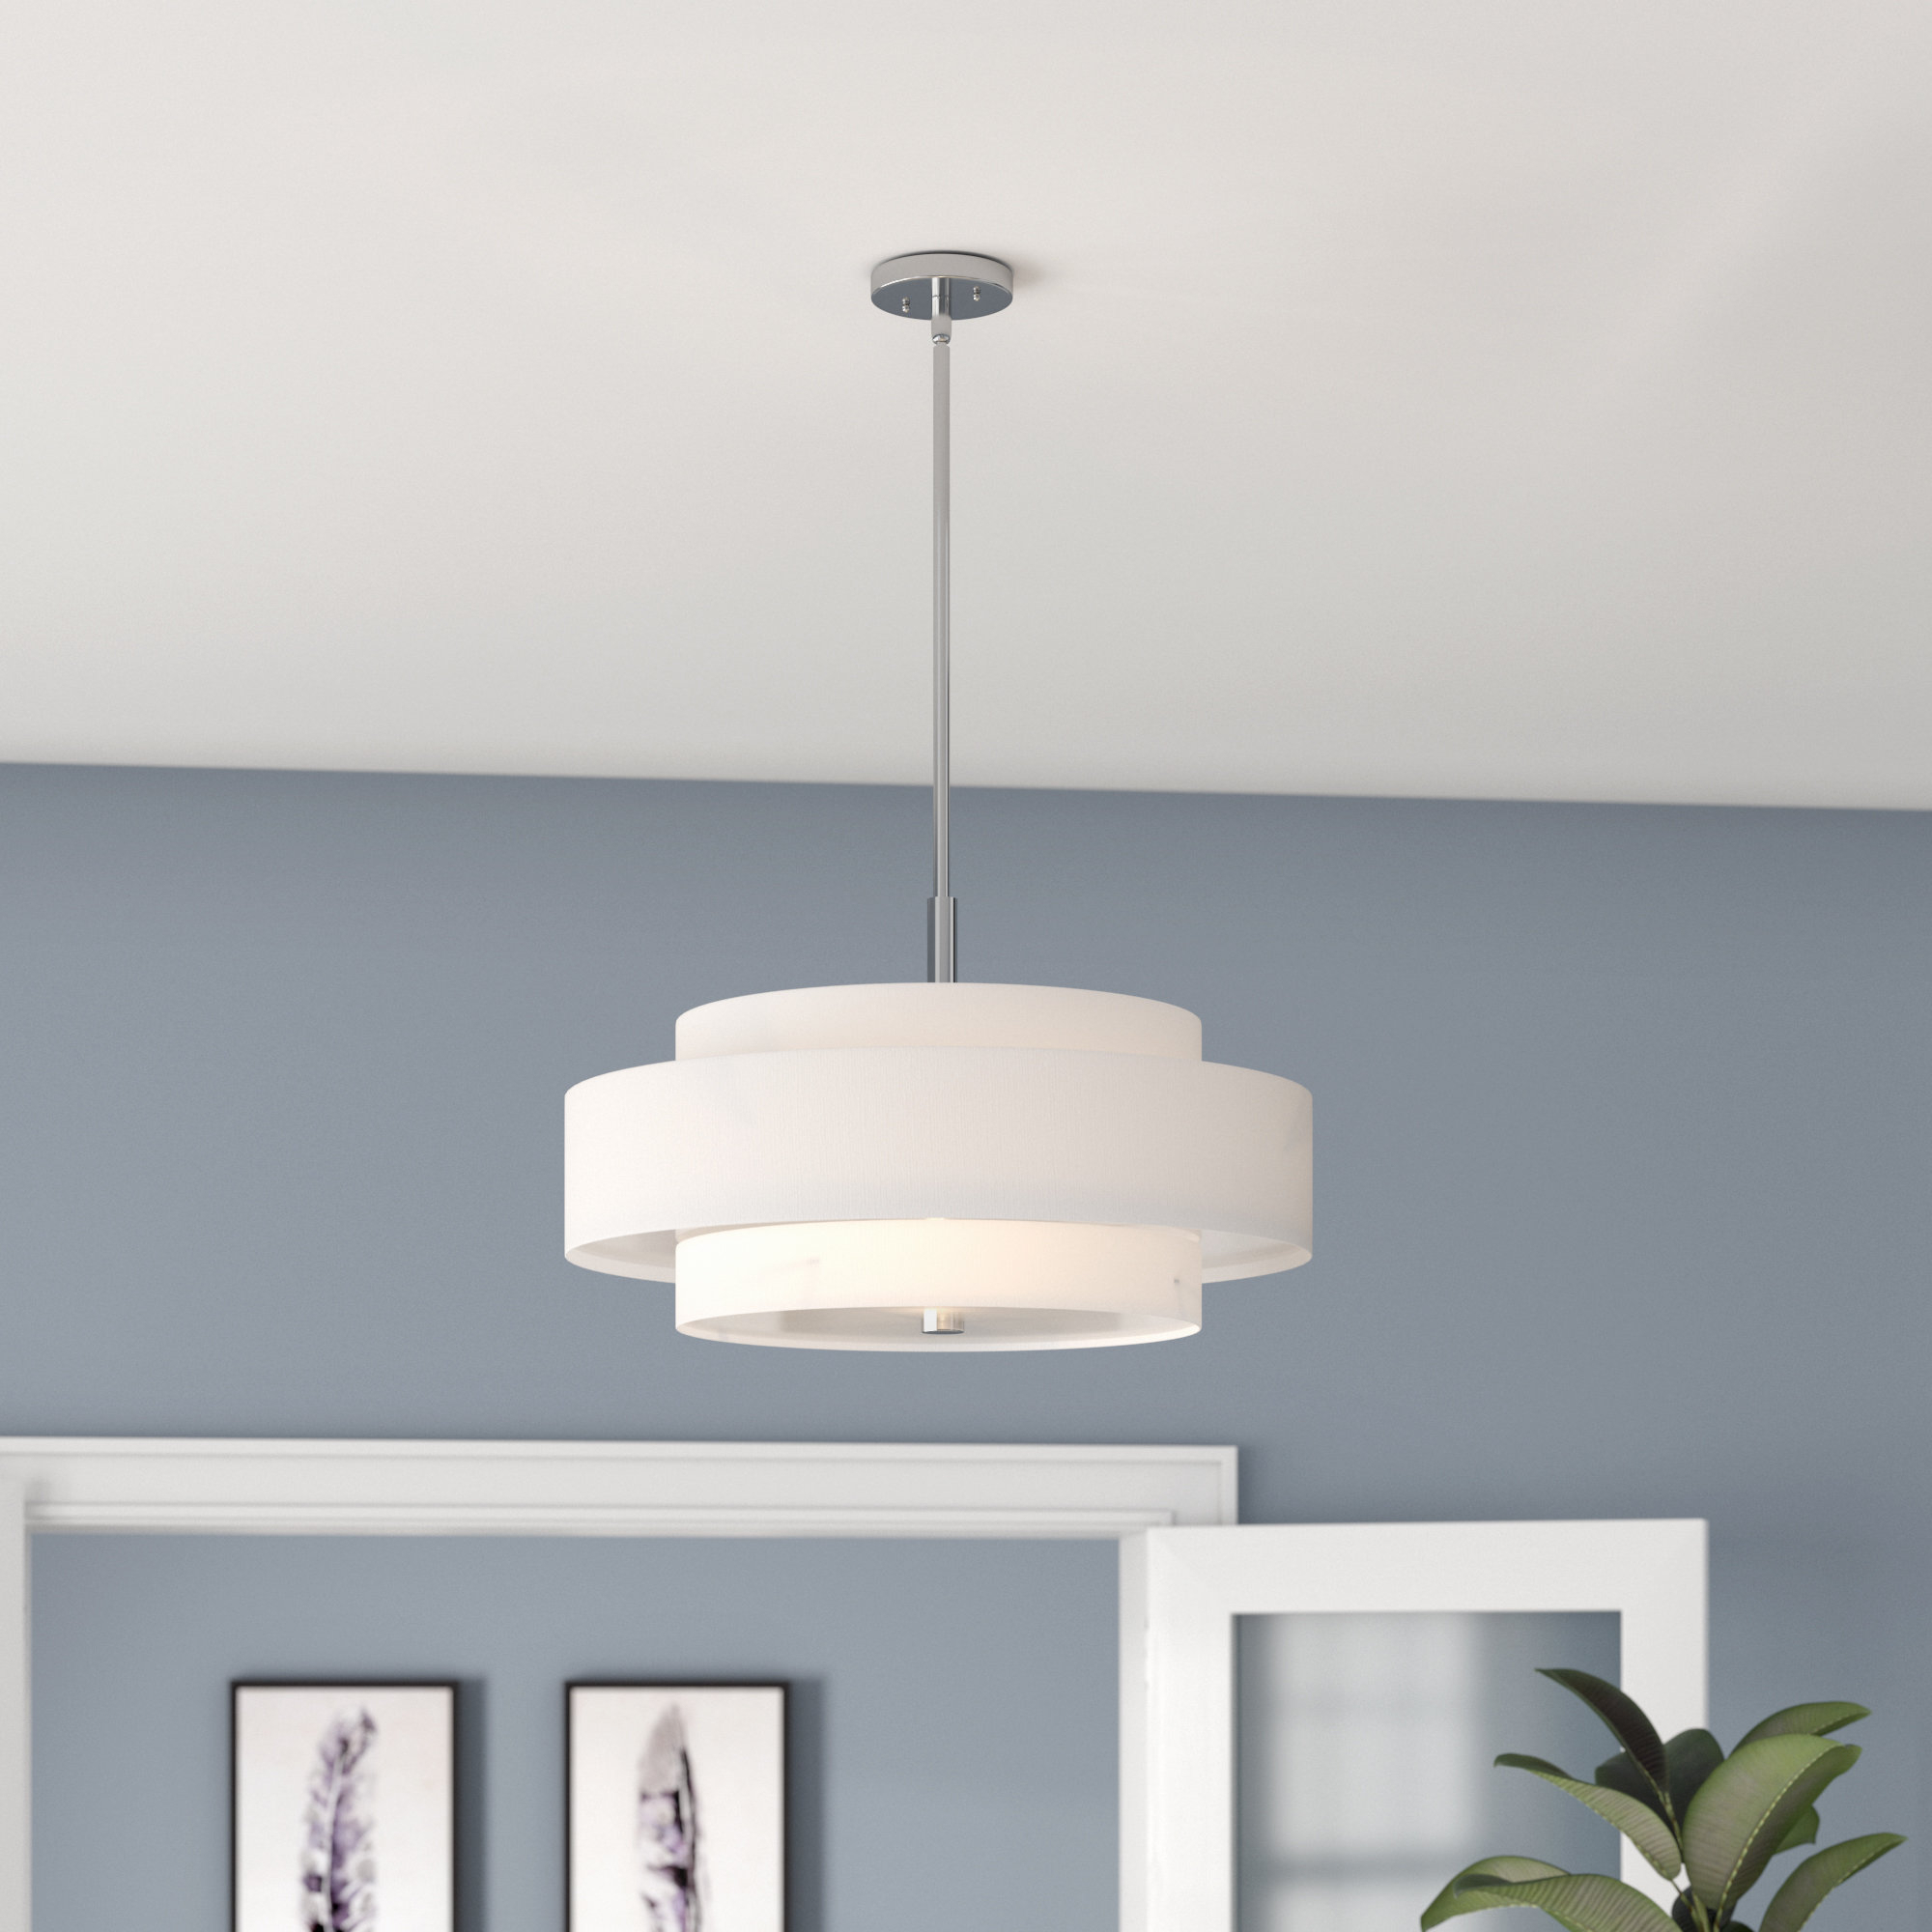 [%Drum Chandeliers Sale – Up To 65% Off Until September 30Th With Regard To Latest Aadhya 5 Light Drum Chandeliers|Aadhya 5 Light Drum Chandeliers Within Fashionable Drum Chandeliers Sale – Up To 65% Off Until September 30Th|Preferred Aadhya 5 Light Drum Chandeliers Pertaining To Drum Chandeliers Sale – Up To 65% Off Until September 30Th|Well Liked Drum Chandeliers Sale – Up To 65% Off Until September 30Th Pertaining To Aadhya 5 Light Drum Chandeliers%] (View 18 of 25)